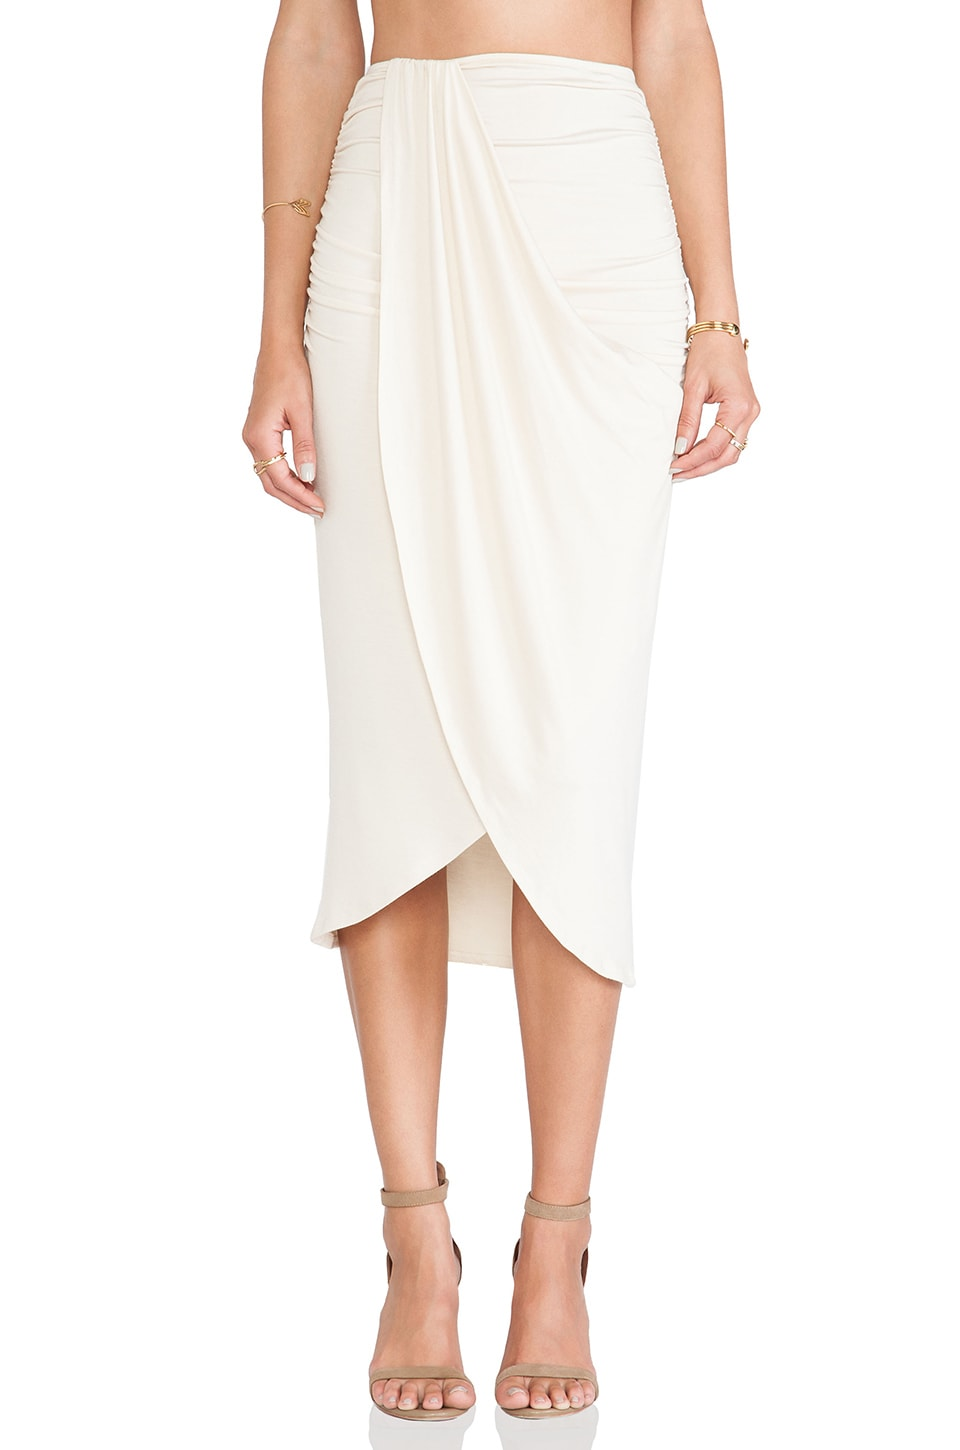 Rachel Pally Kerr Skirt in Cream